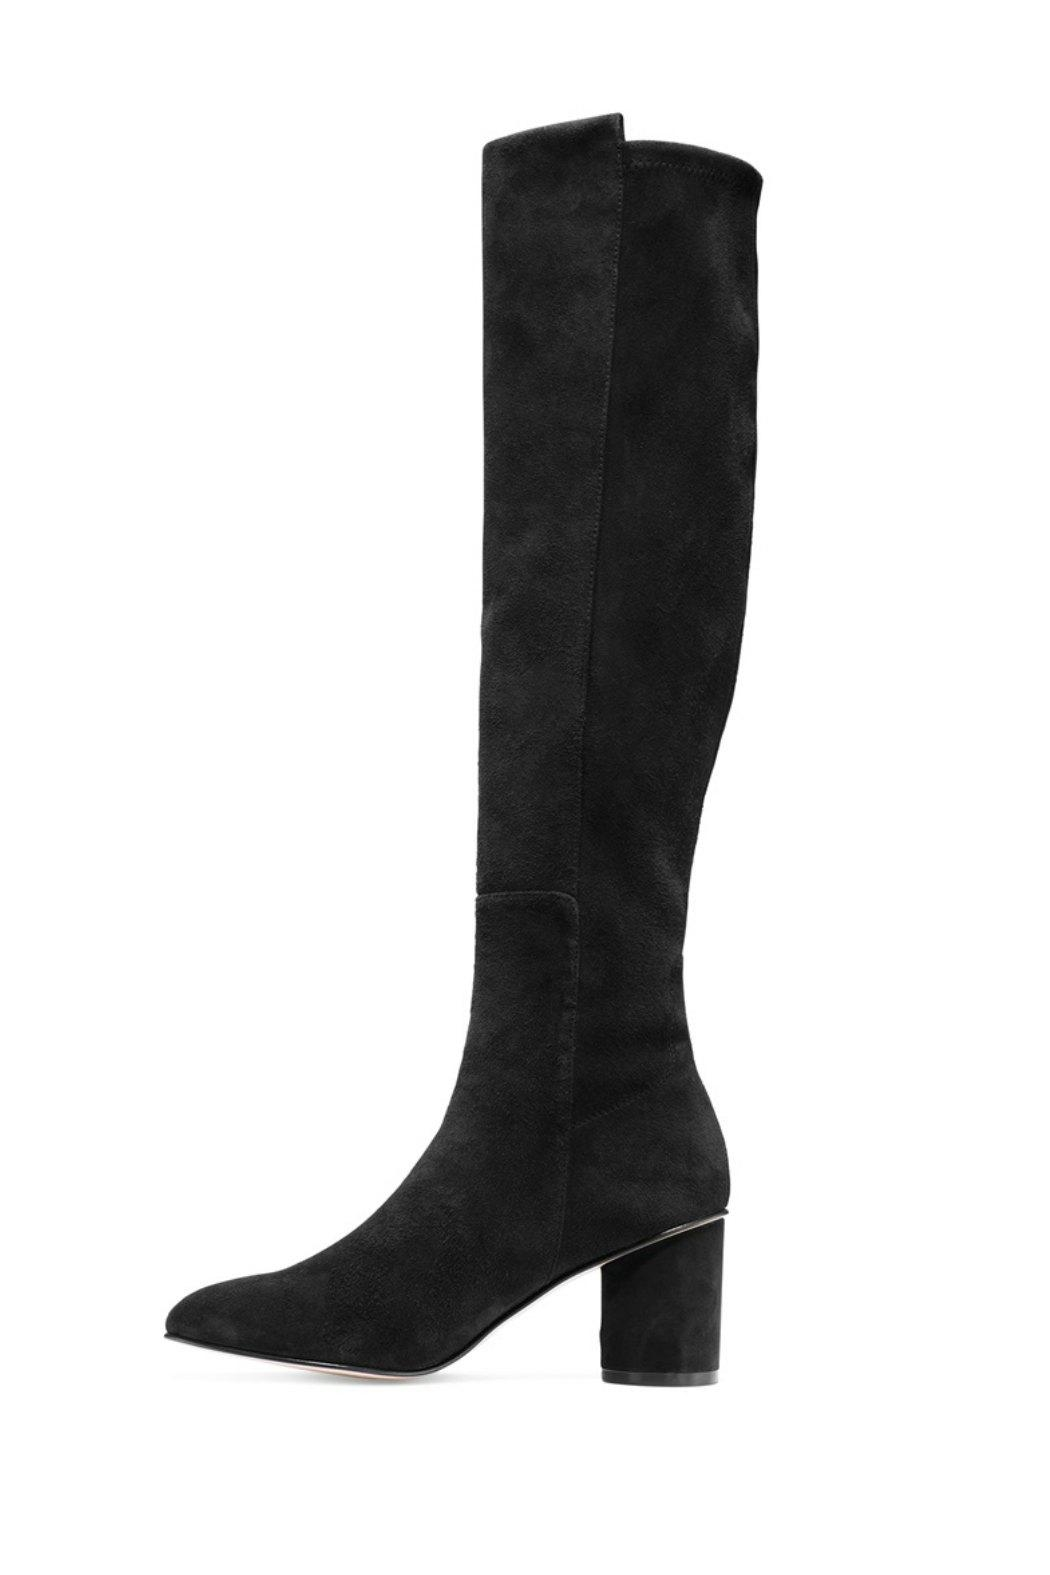 949efeea7b7 Stuart Weitzman Eloise Knee Boot from New Hampshire by Stiletto ...